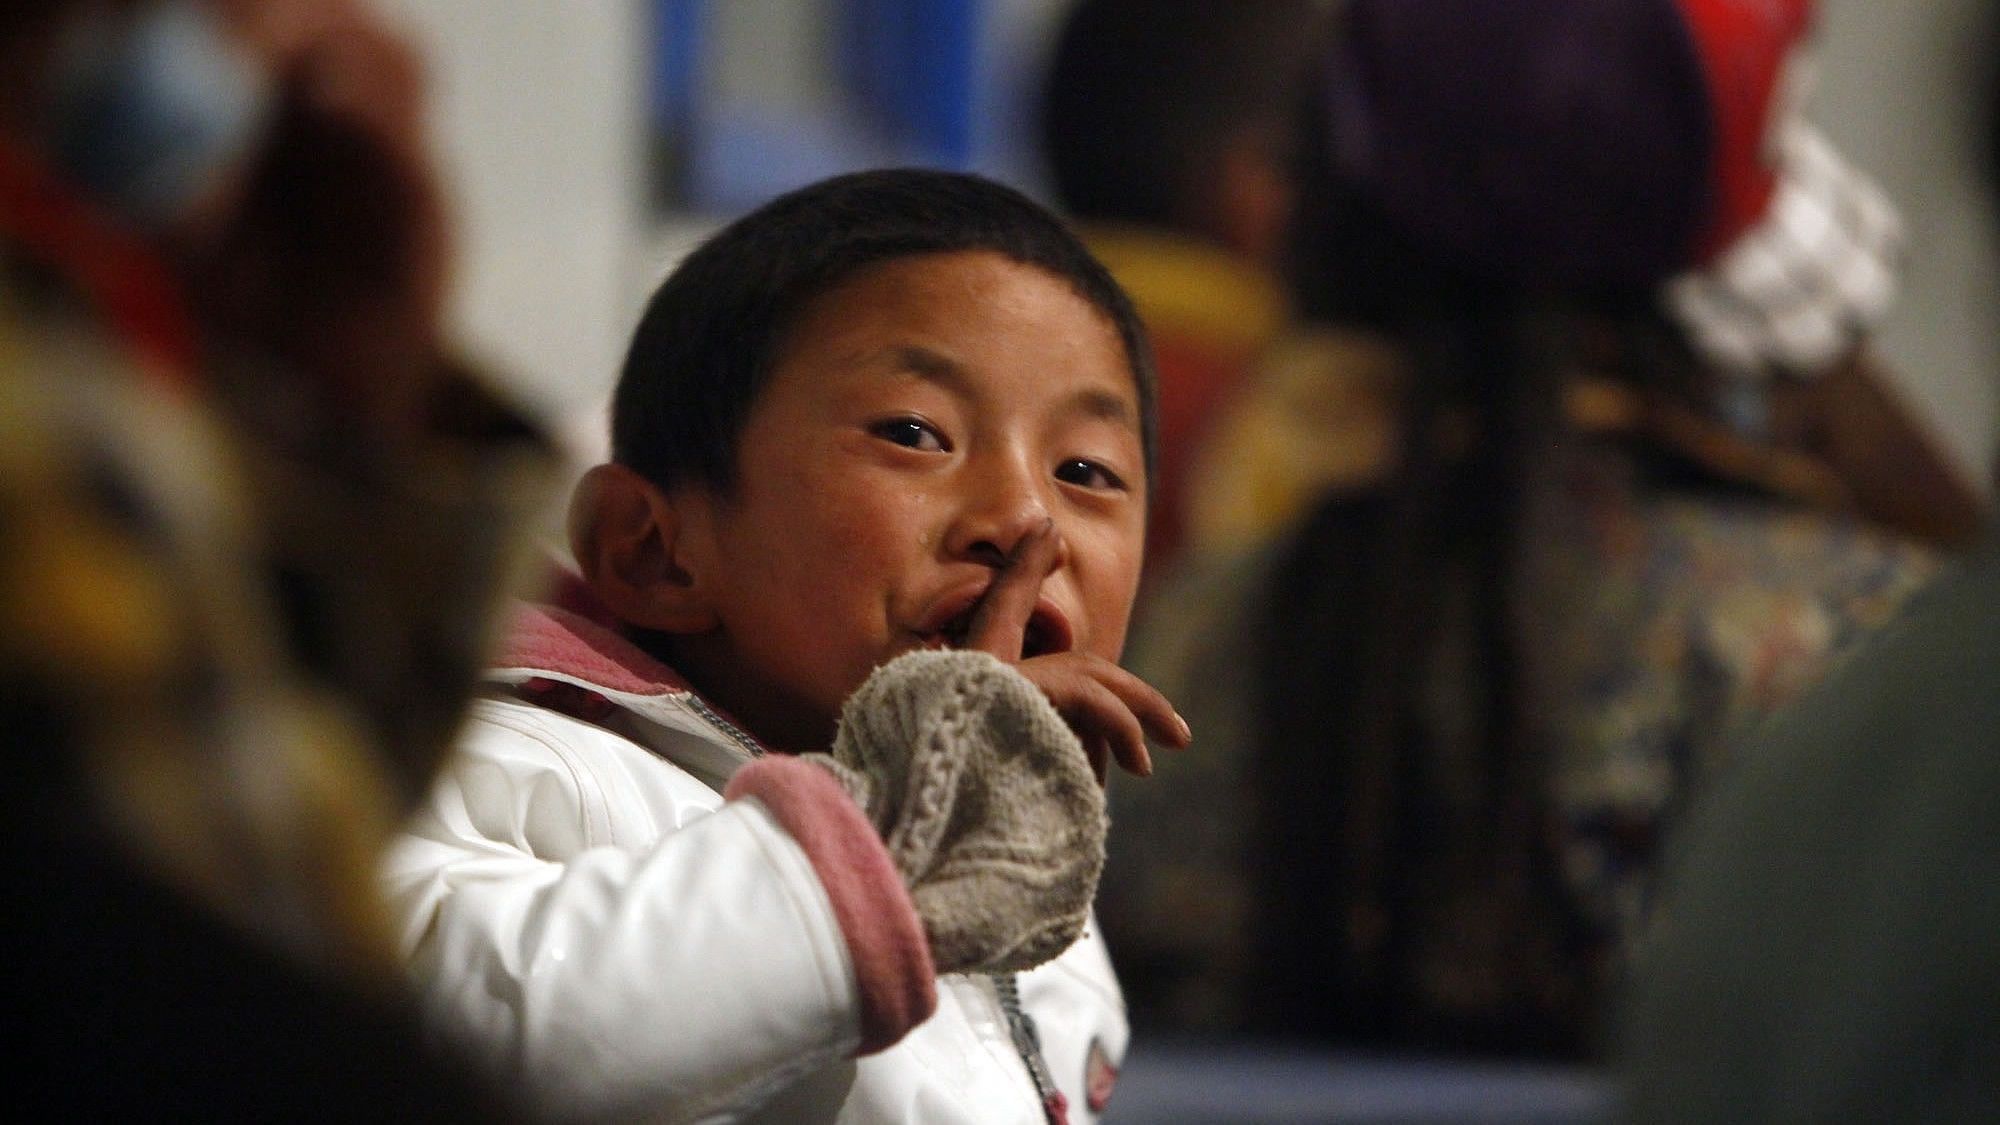 Relocation of Yushu students – What drives the change from disaster to happy ending?